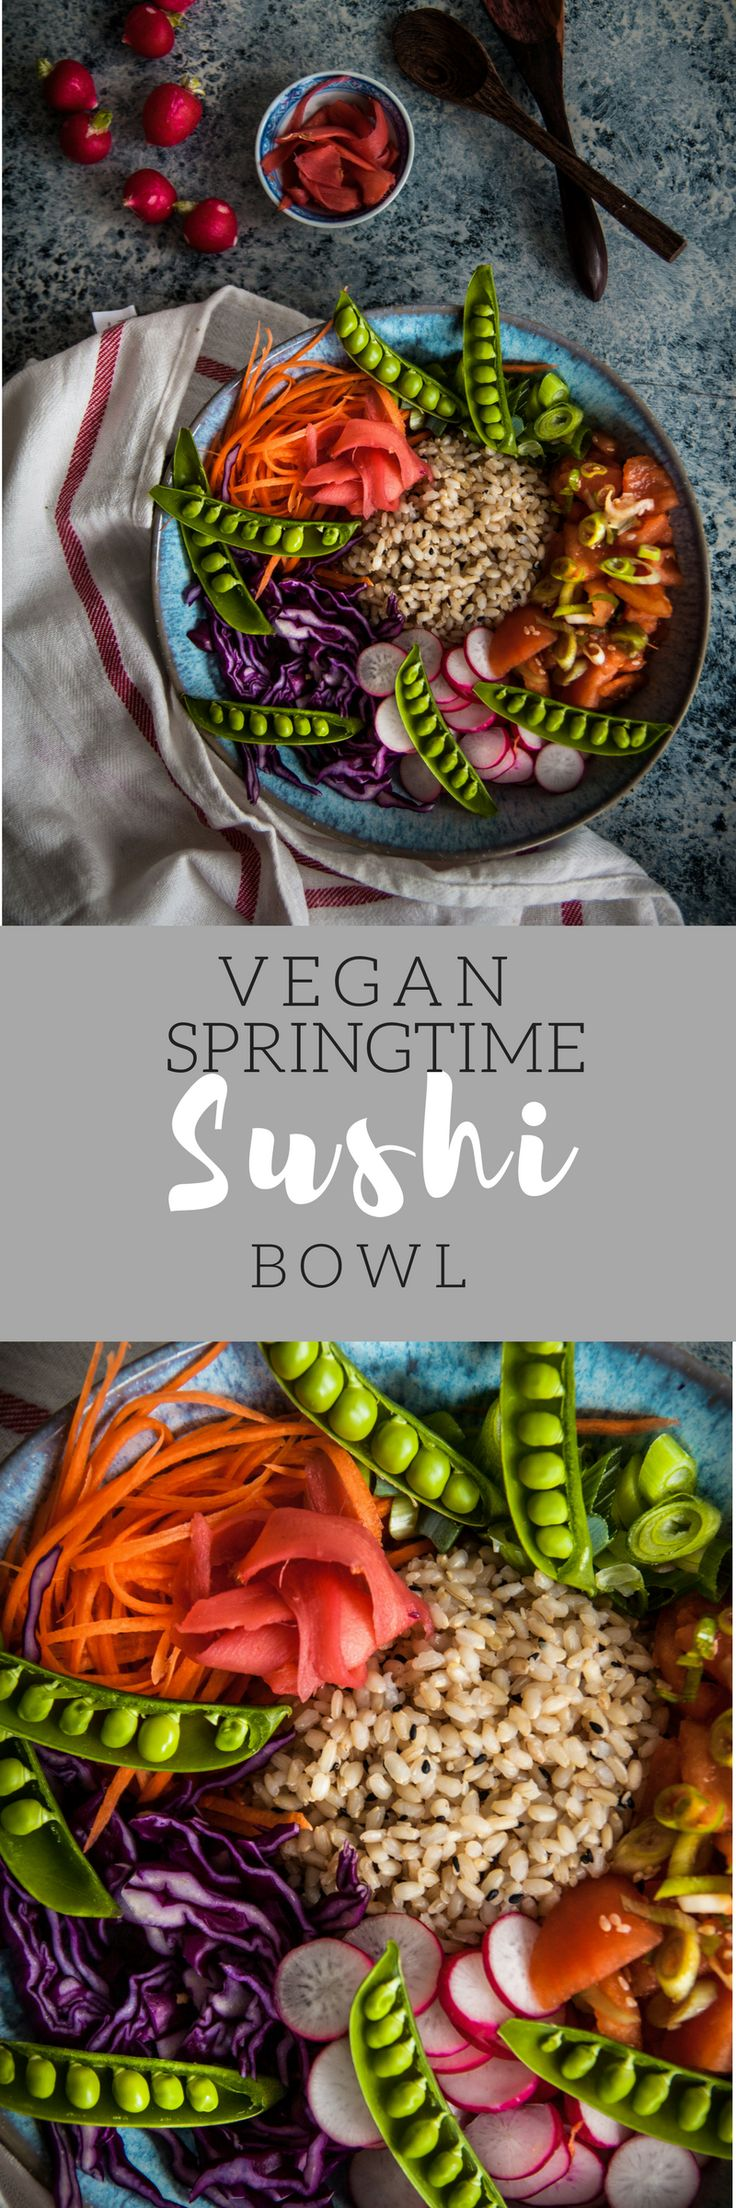 Welcome spring with this vegan sushi bowl!